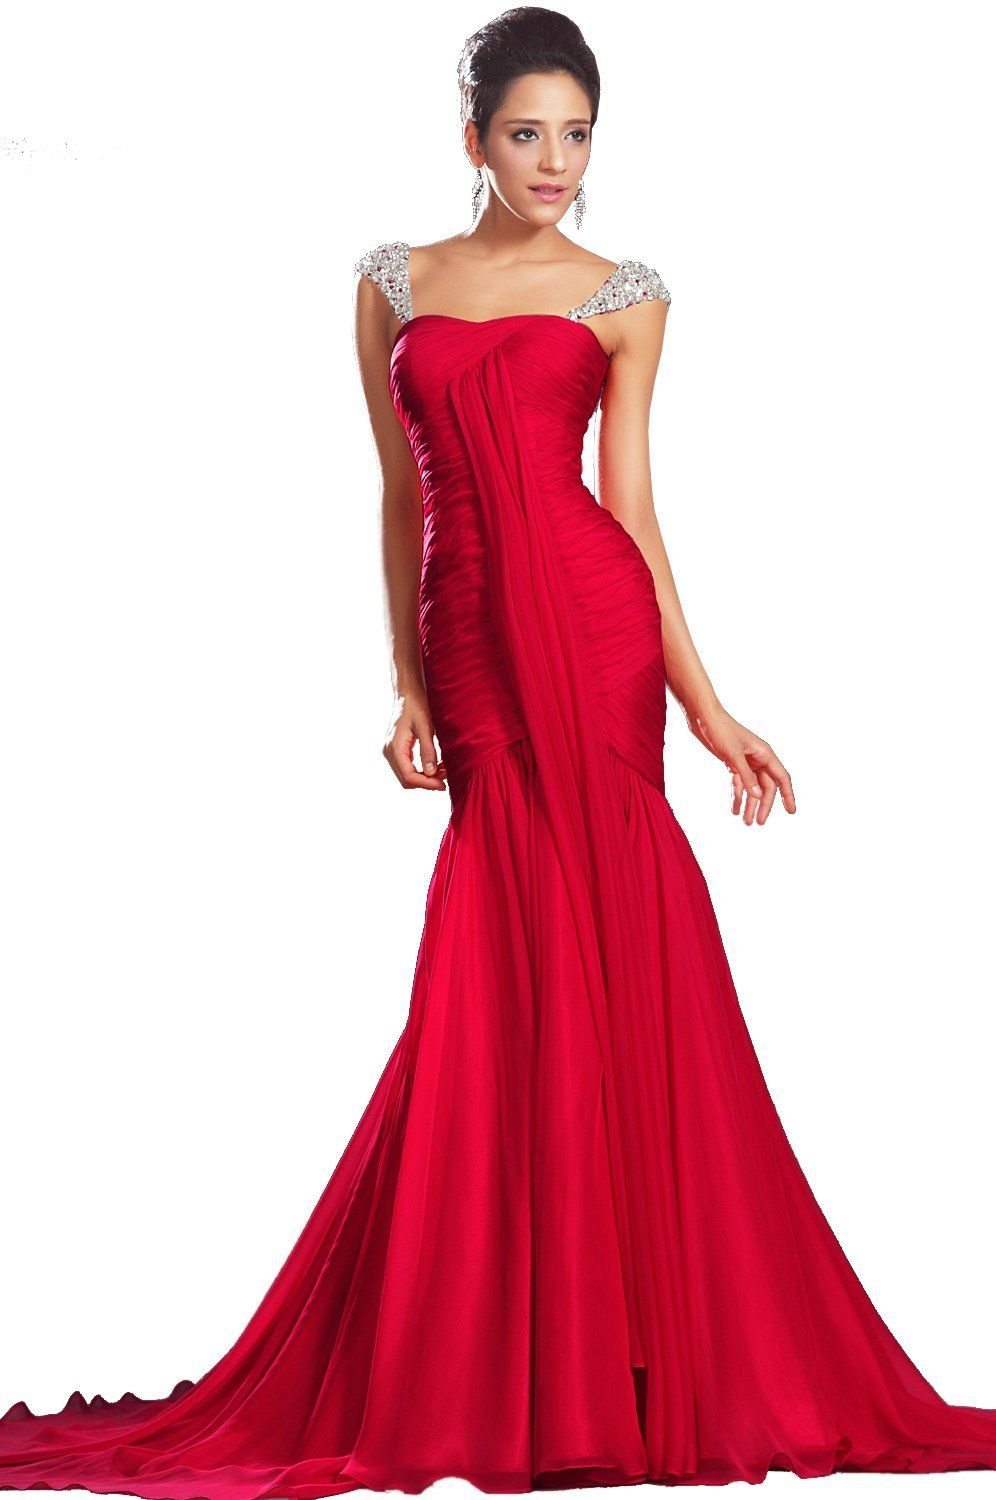 Wedding Red Evening Gown evening dresses 2013 red 2013